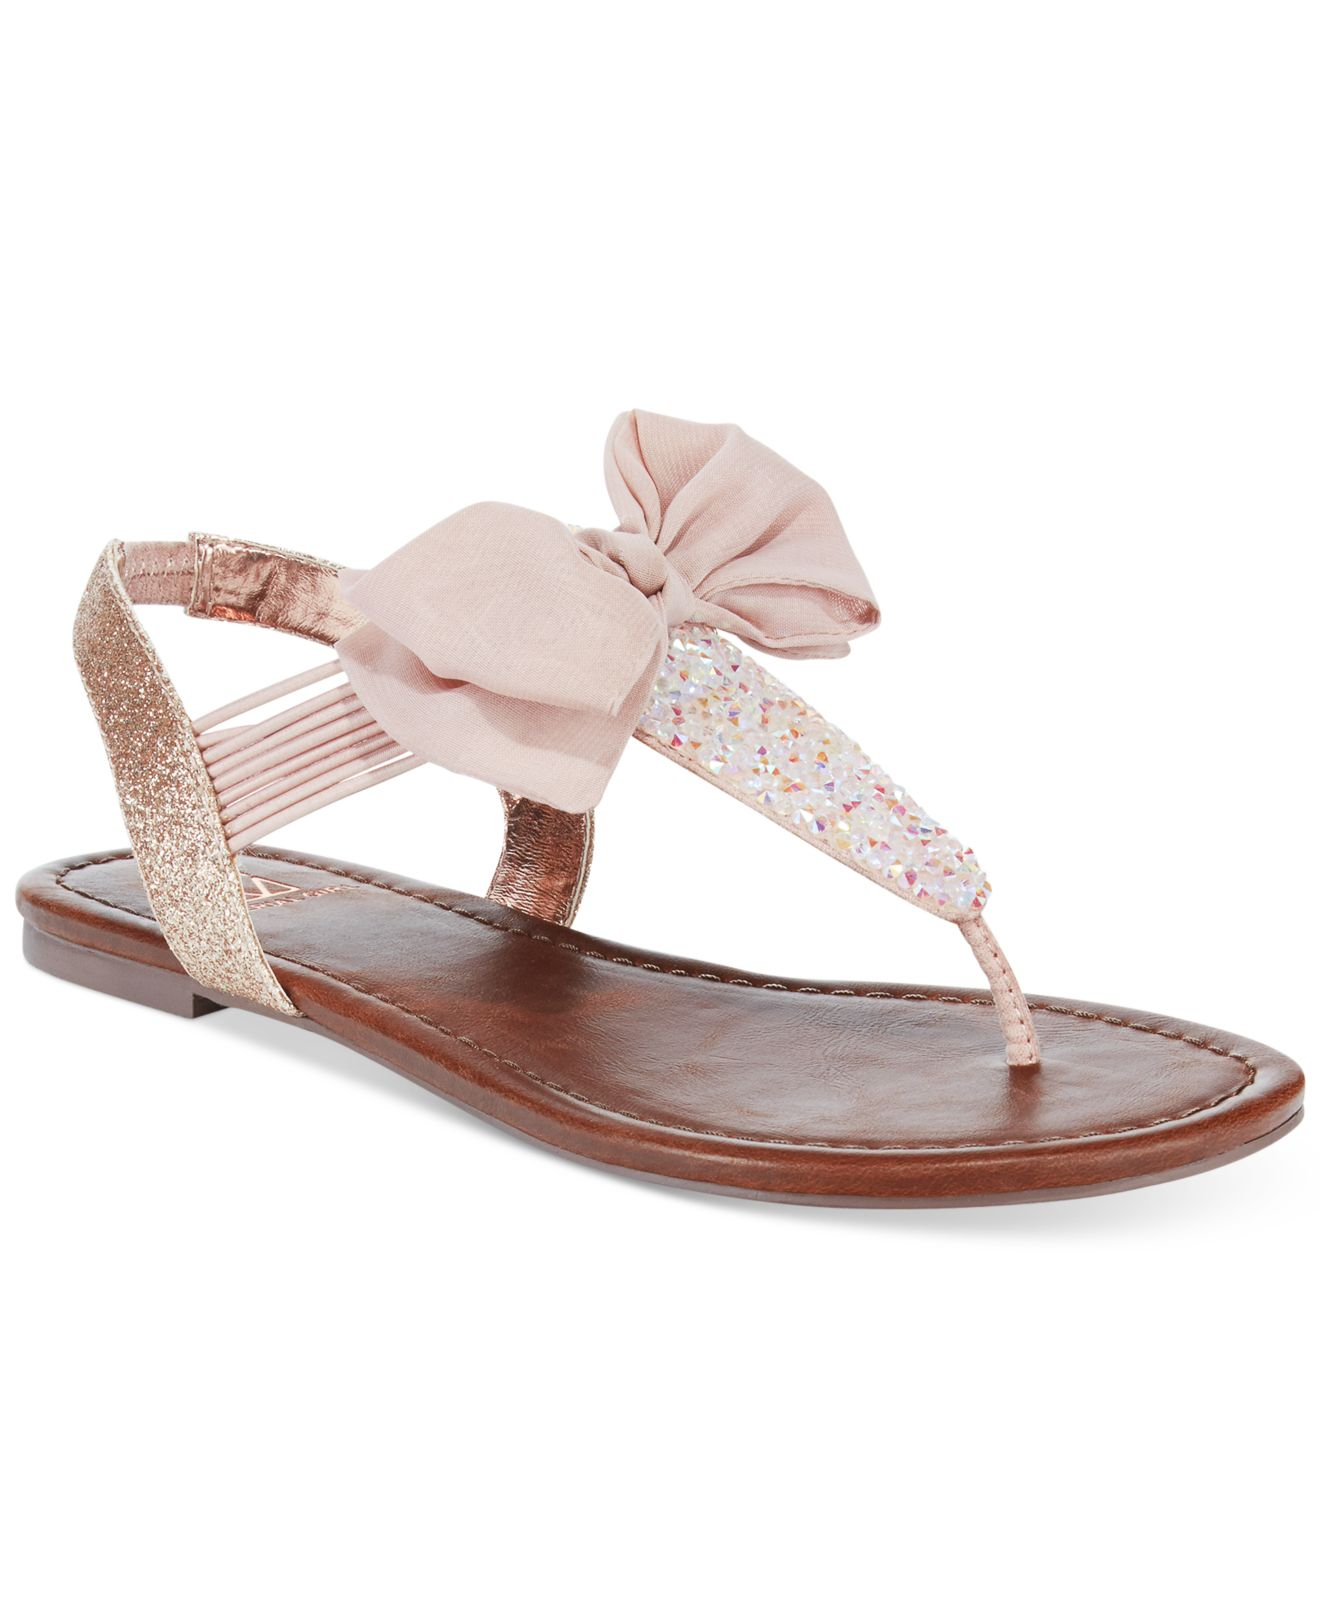 lyst material girl swan flat thong sandals only at macy. Black Bedroom Furniture Sets. Home Design Ideas